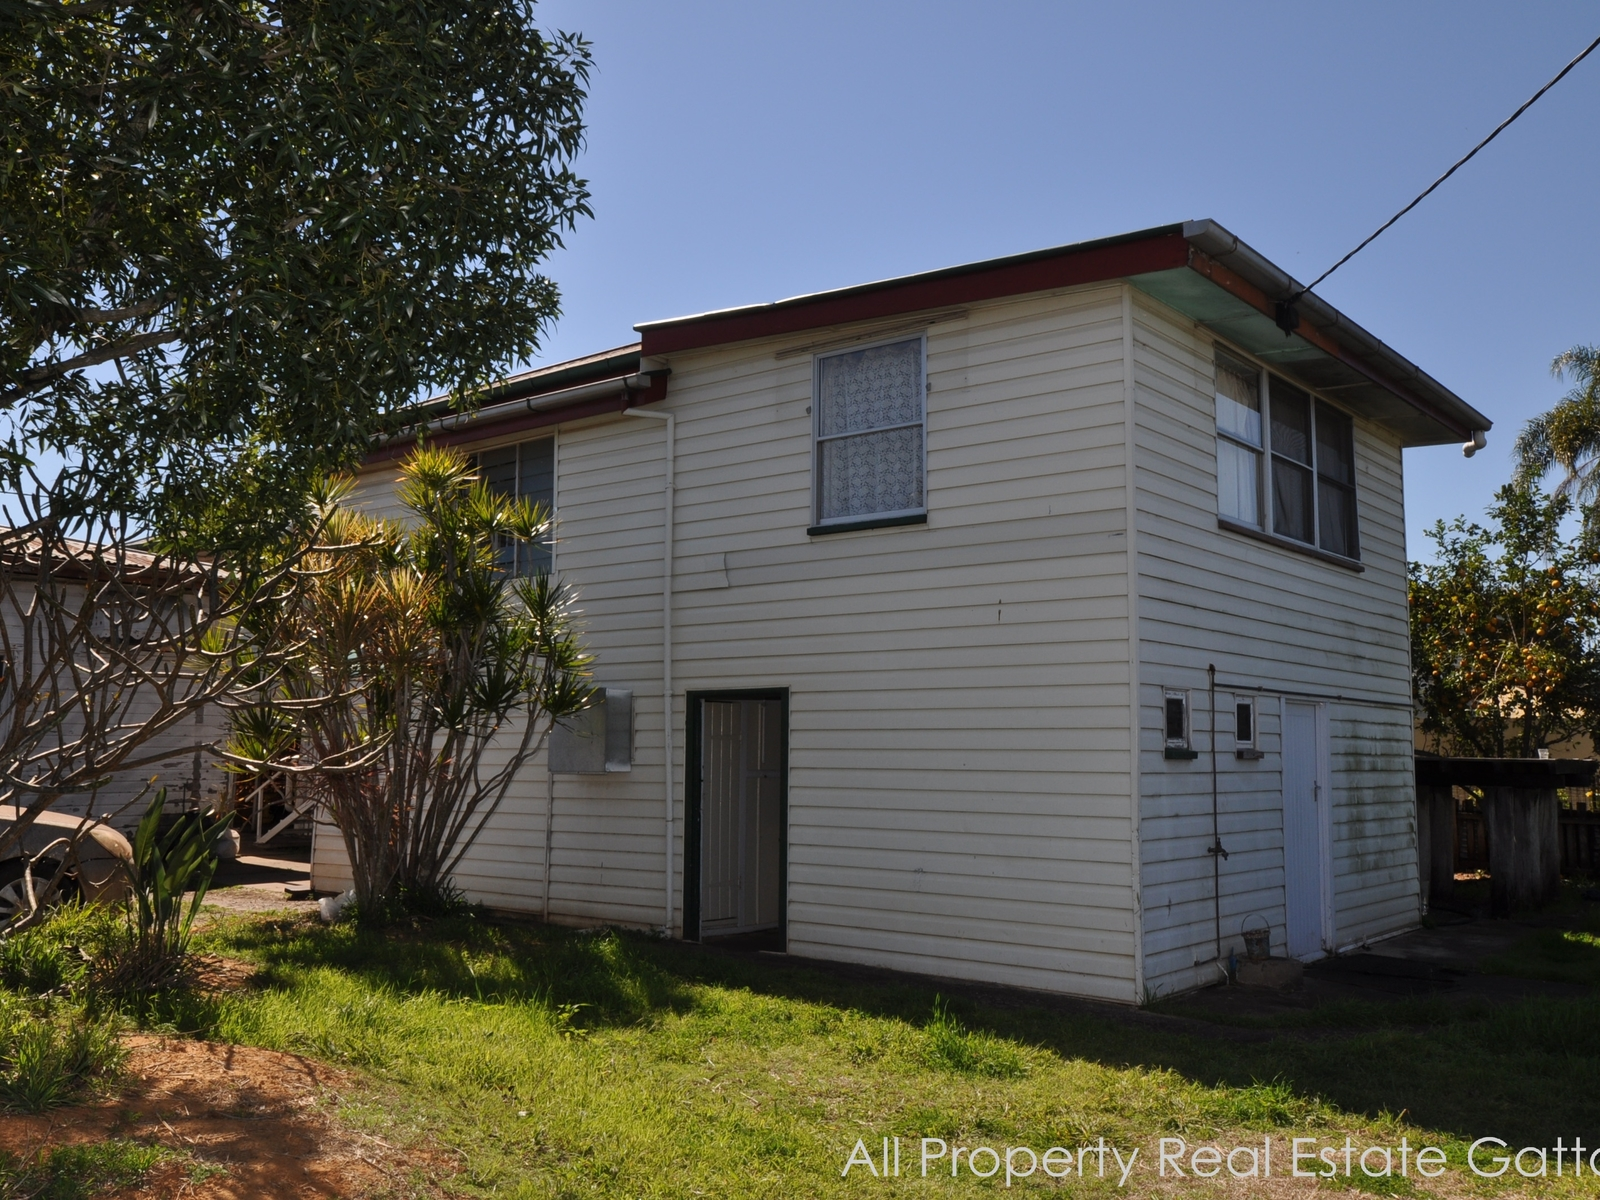 44 Old College Road, Gatton